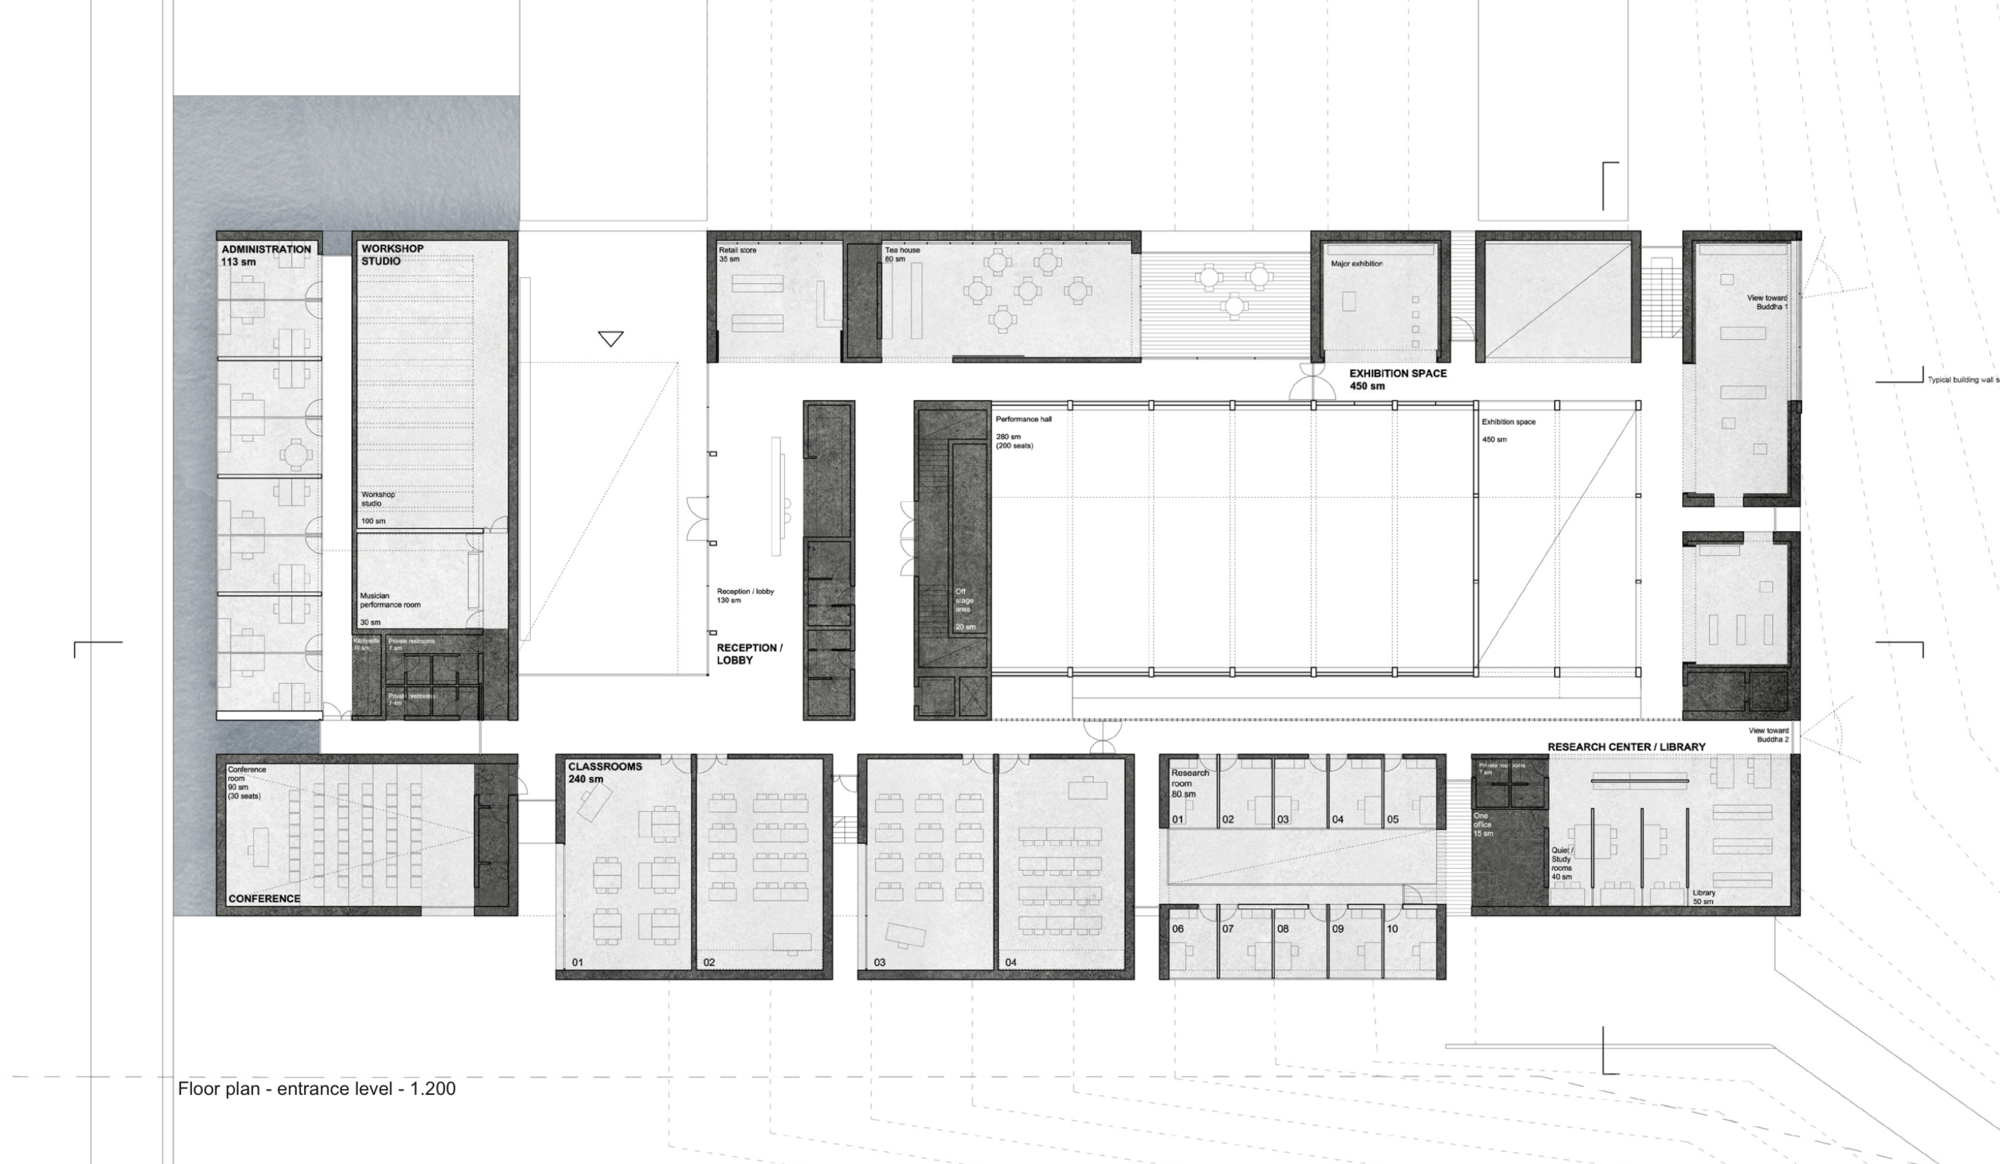 unesco reveals winning scheme for the bamiyan cultural centre in runner up 2 ground floor plan image courtesy of unesco